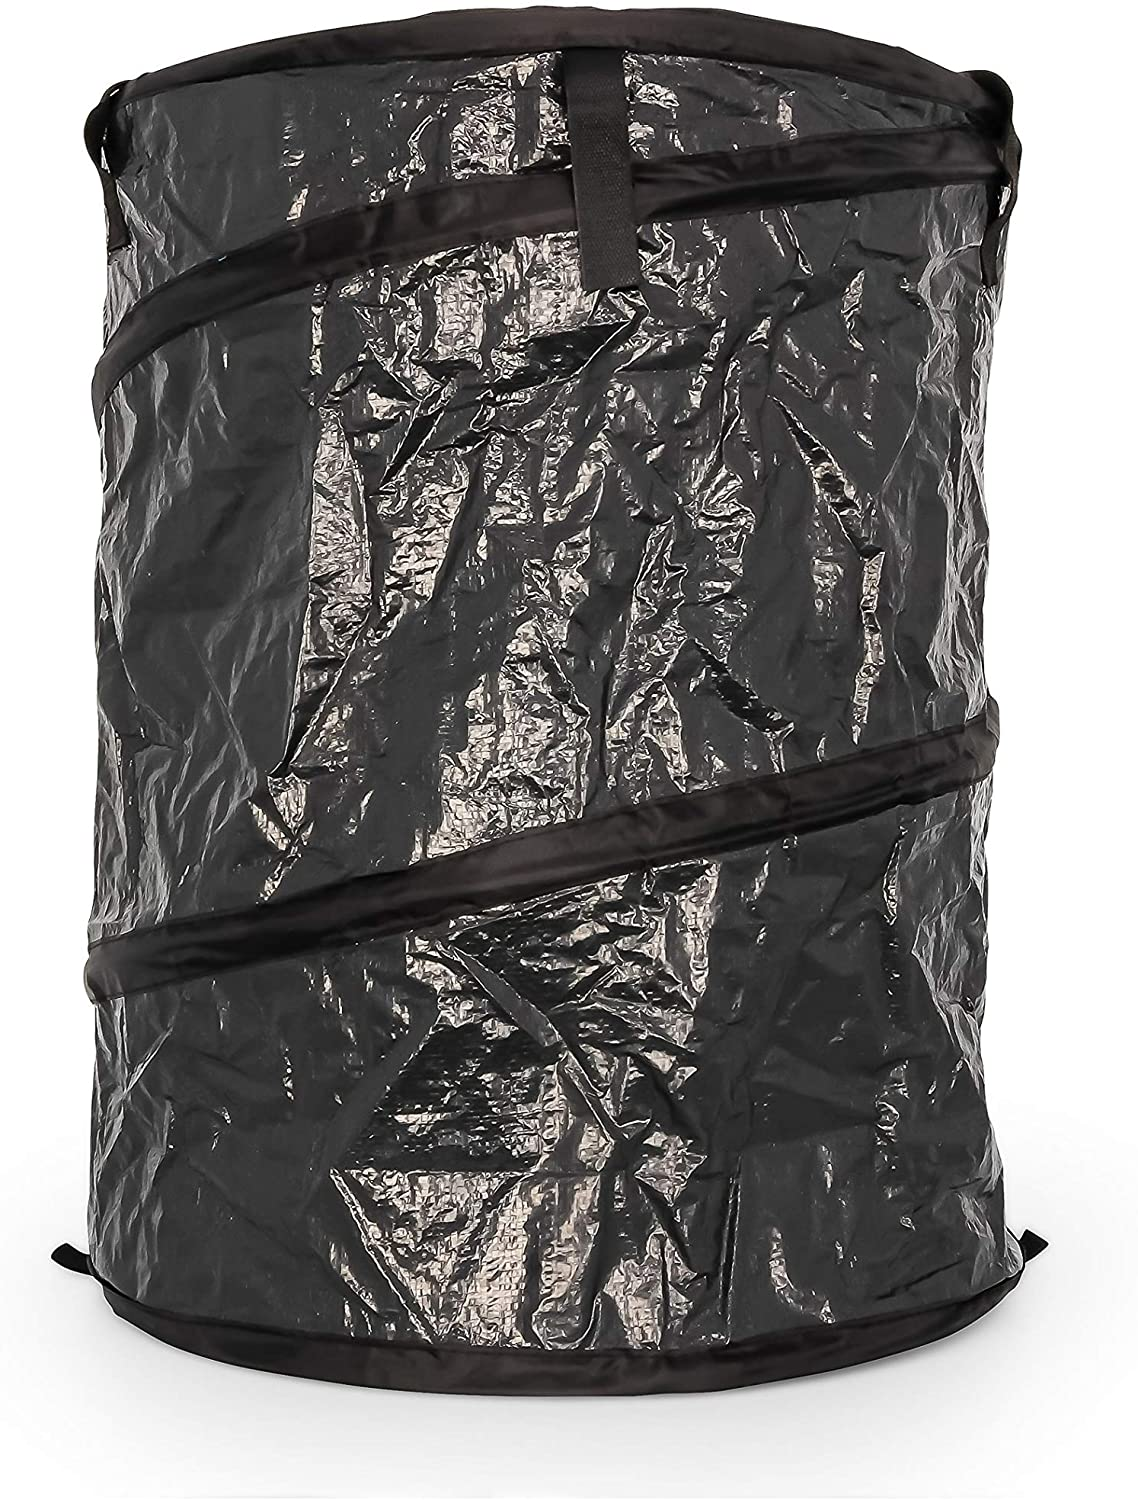 Camco 42893 Pop-Up Utility Container